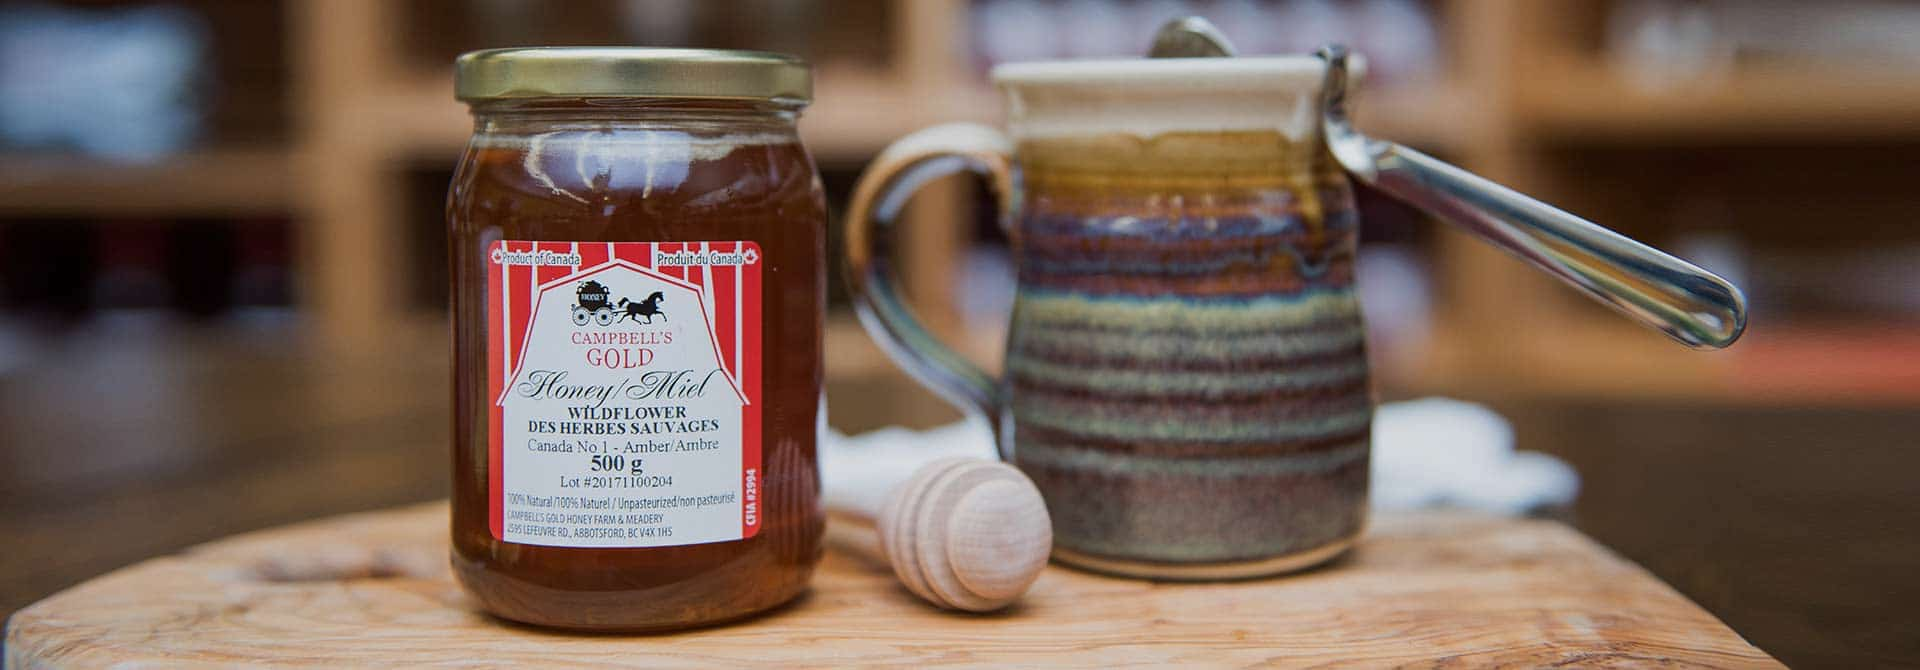 Wildflower Honey - Campbell's Gold